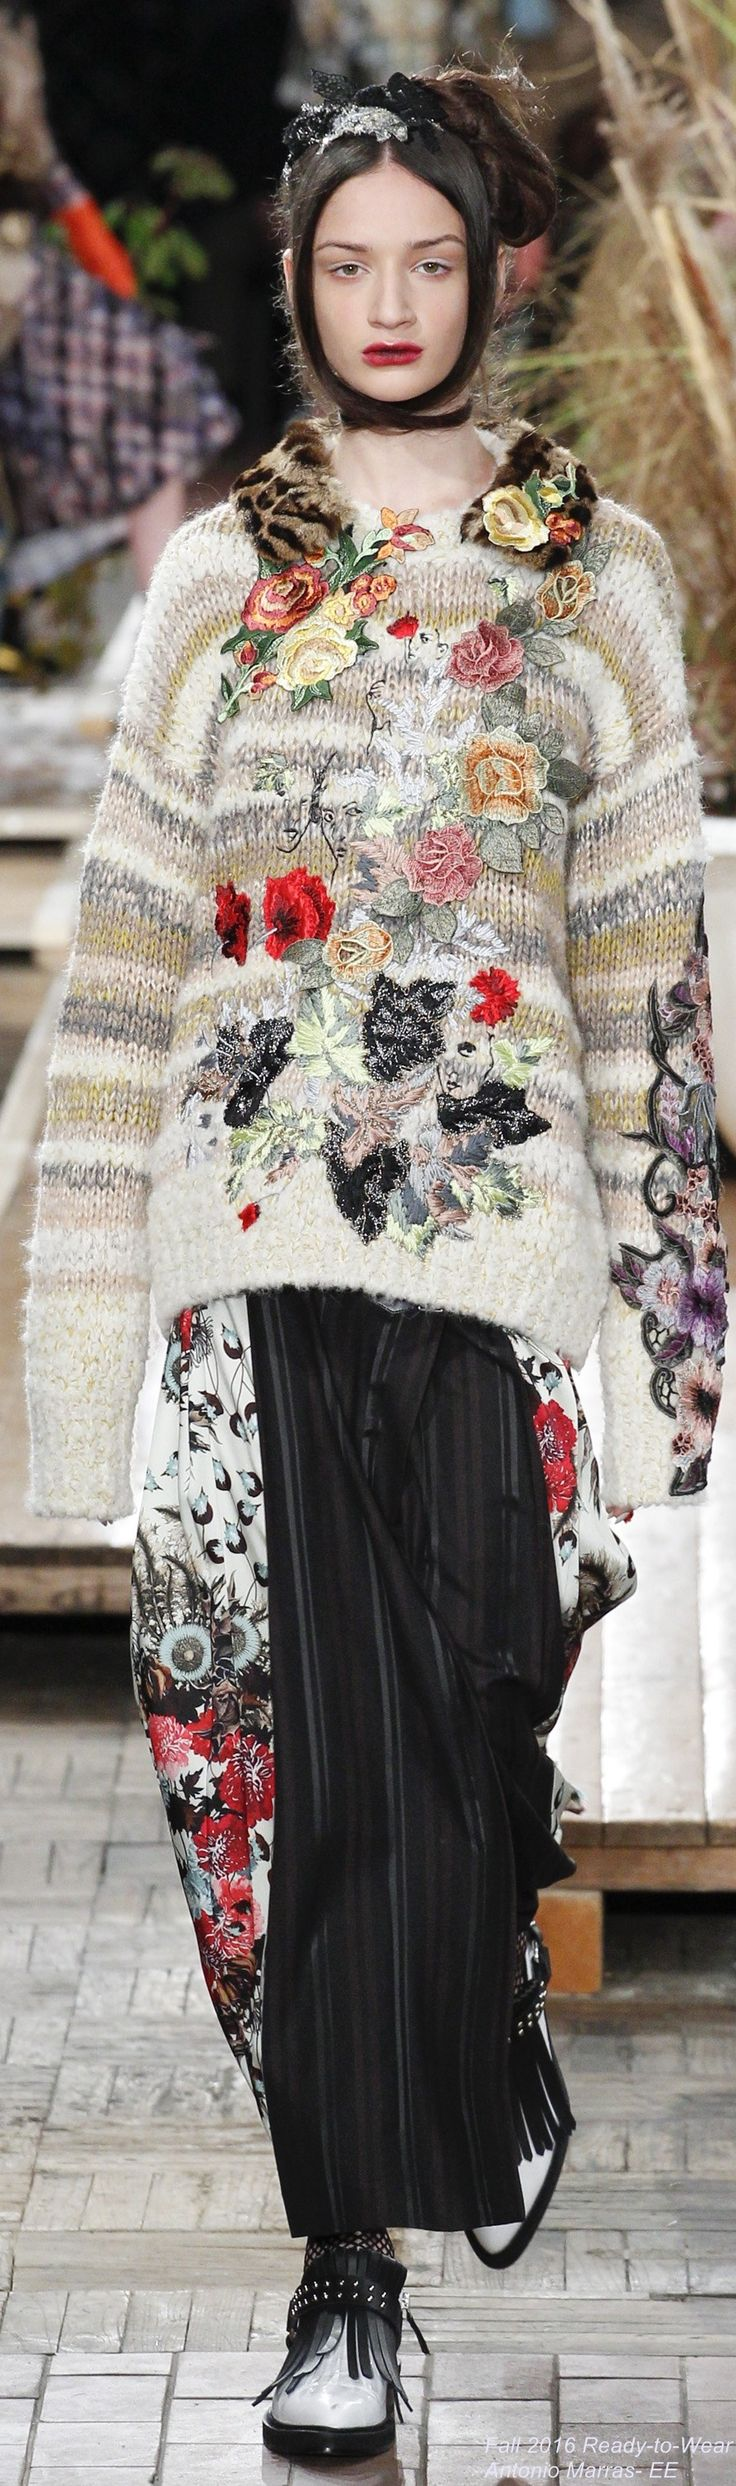 Antonio Marras F-16 RTW: embroidered sweater with leopard collar, stripes & flowers skirt.